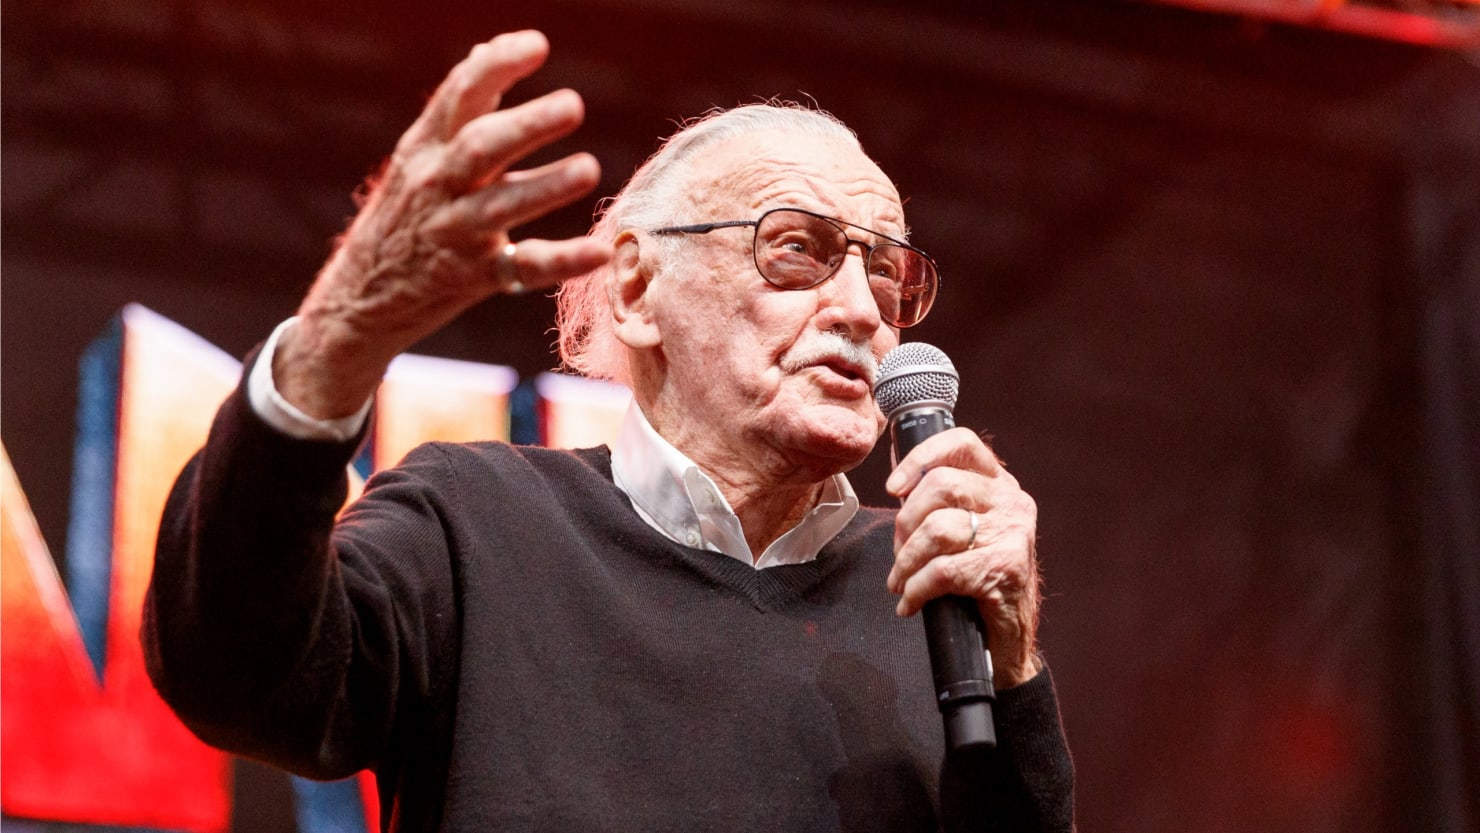 Stan Lee's Celeb 'Superheroes' Pay Tribute to Their Creator